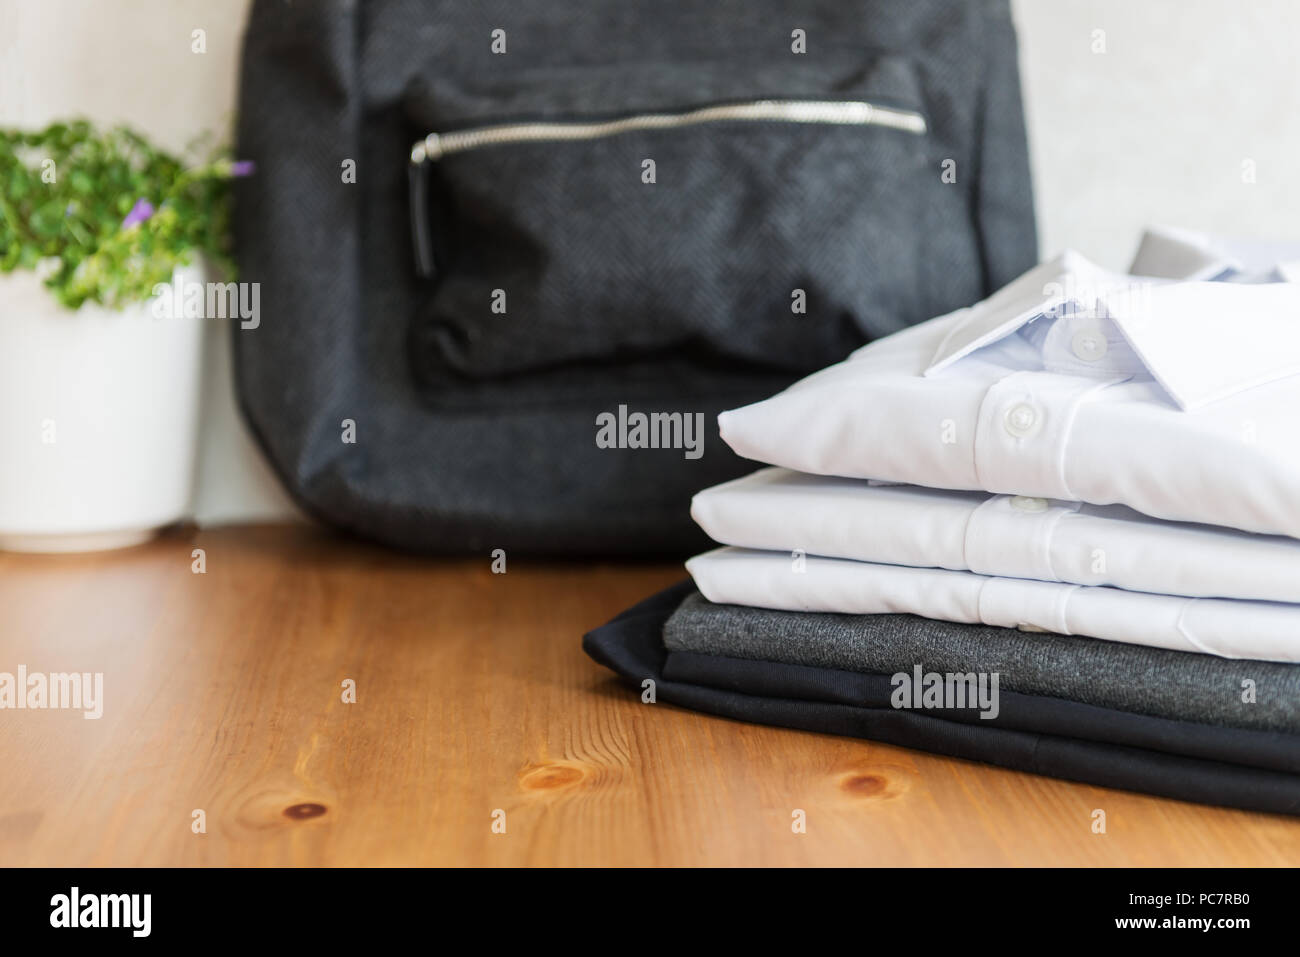 Back to school concept, backpack, school uniform such as white shirts, sweater and trousers on the light background - Stock Image